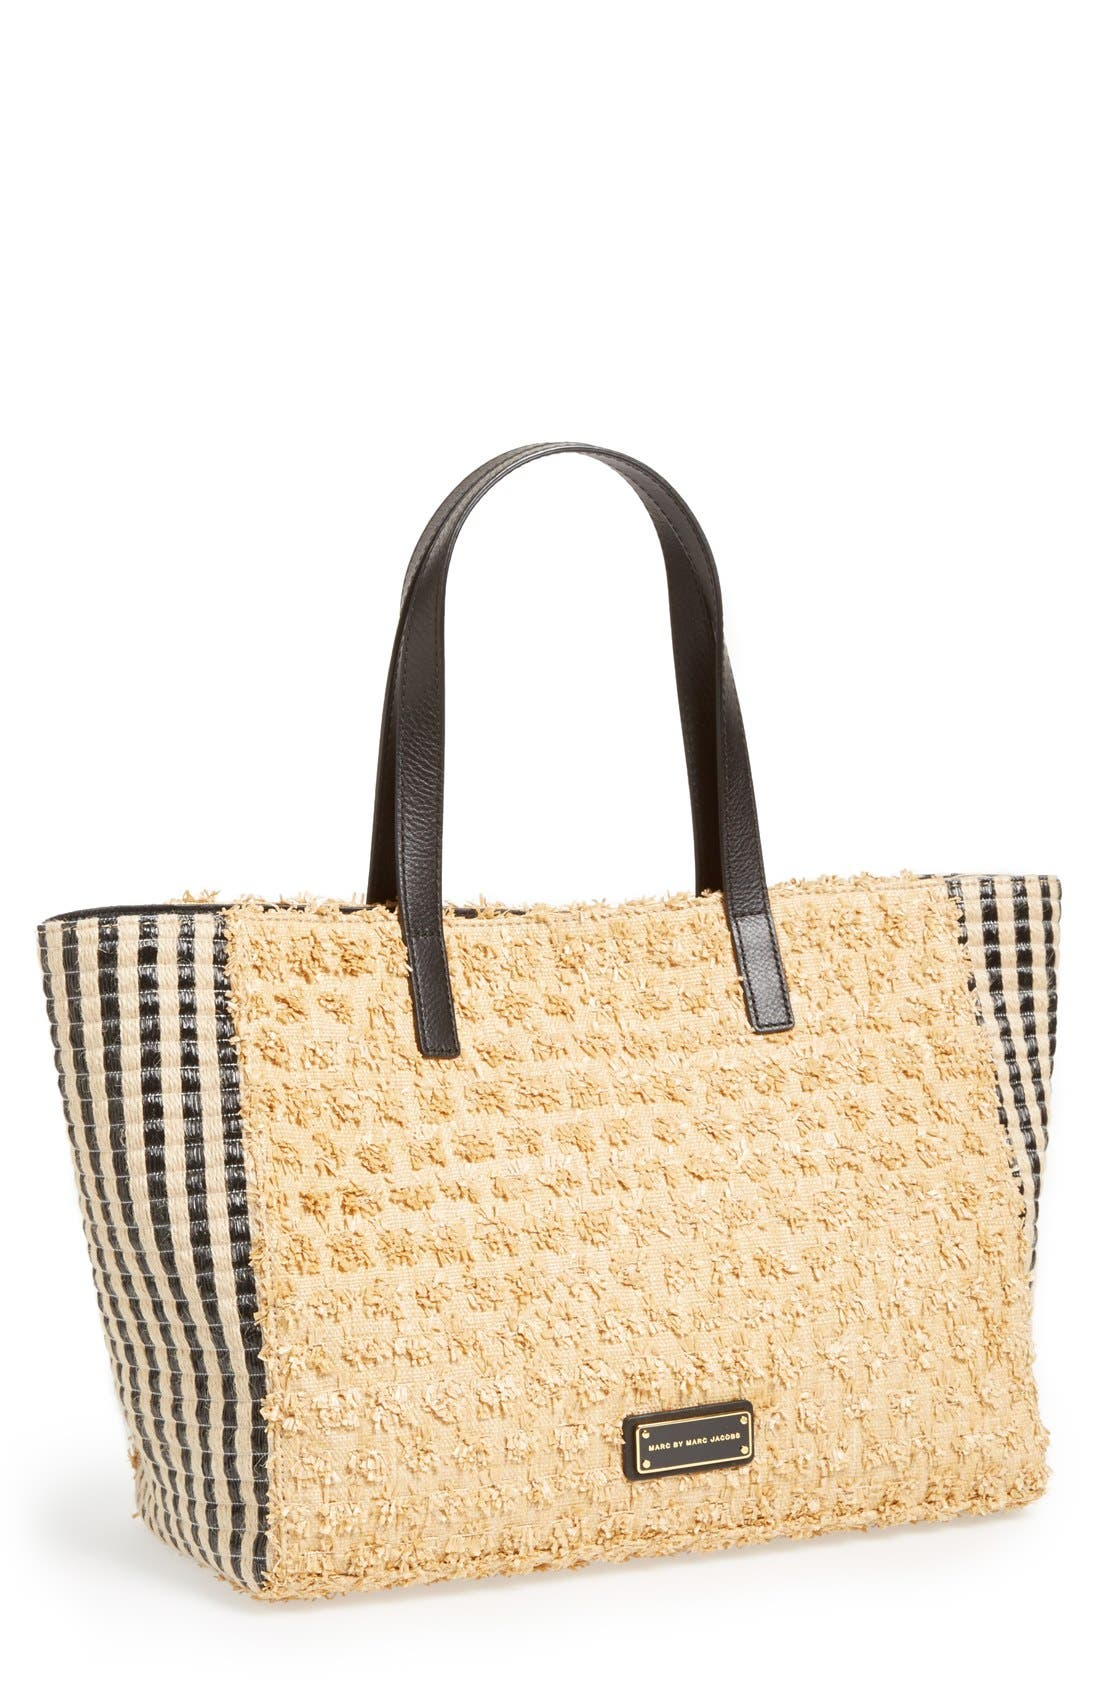 Main Image - MARC BY MARC JACOBS 'Isle de Sea - Tina' Tote